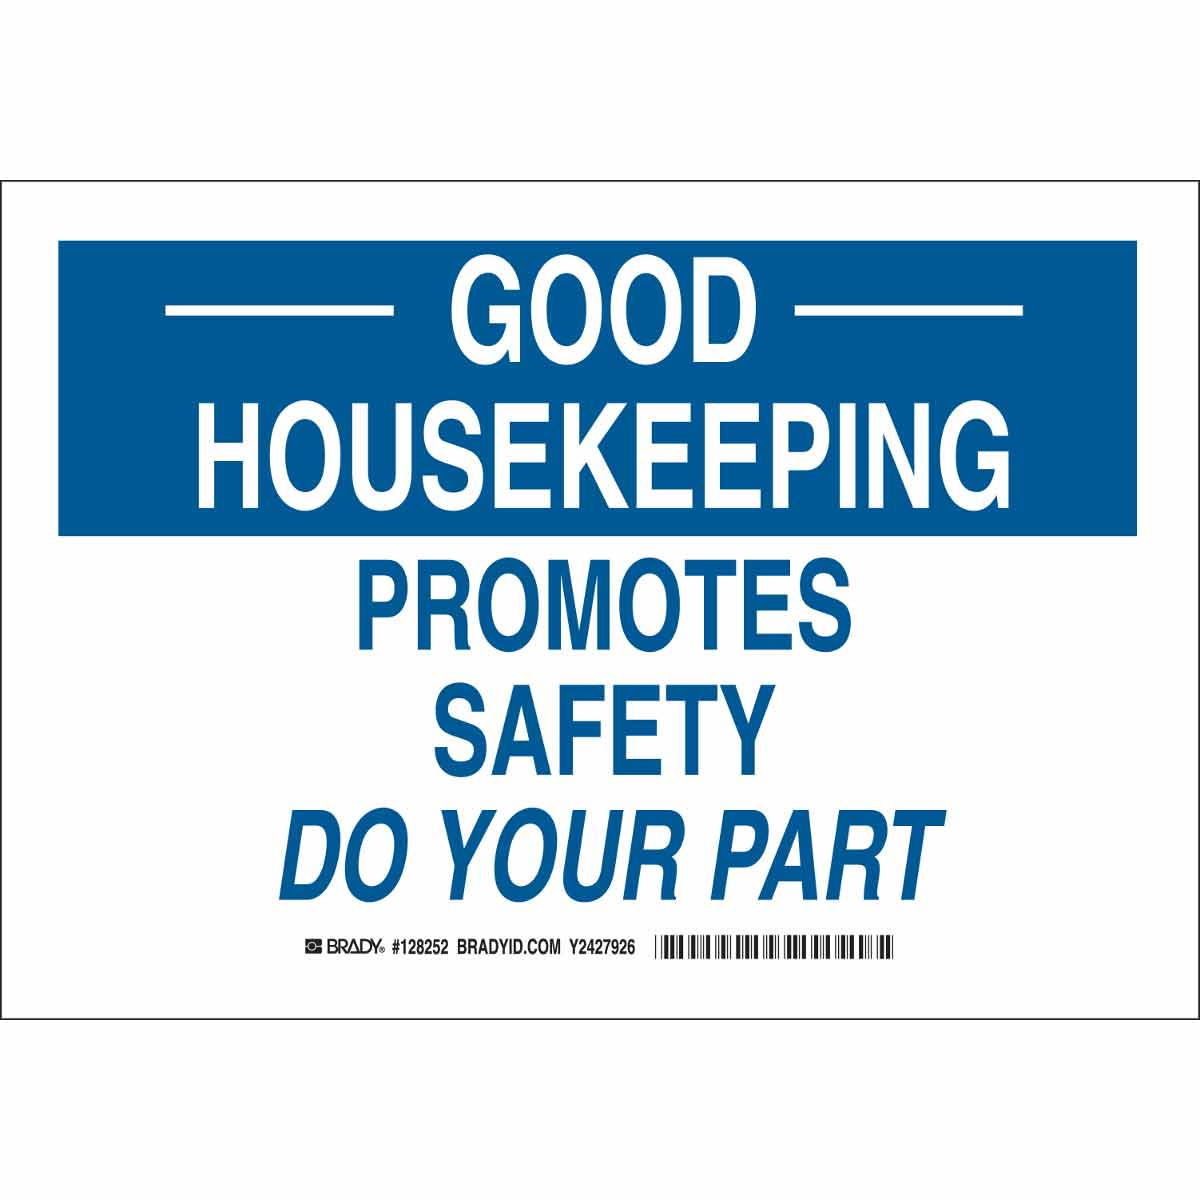 Good Housekeeping: GOOD HOUSEKEEPING Promotes Safety Do